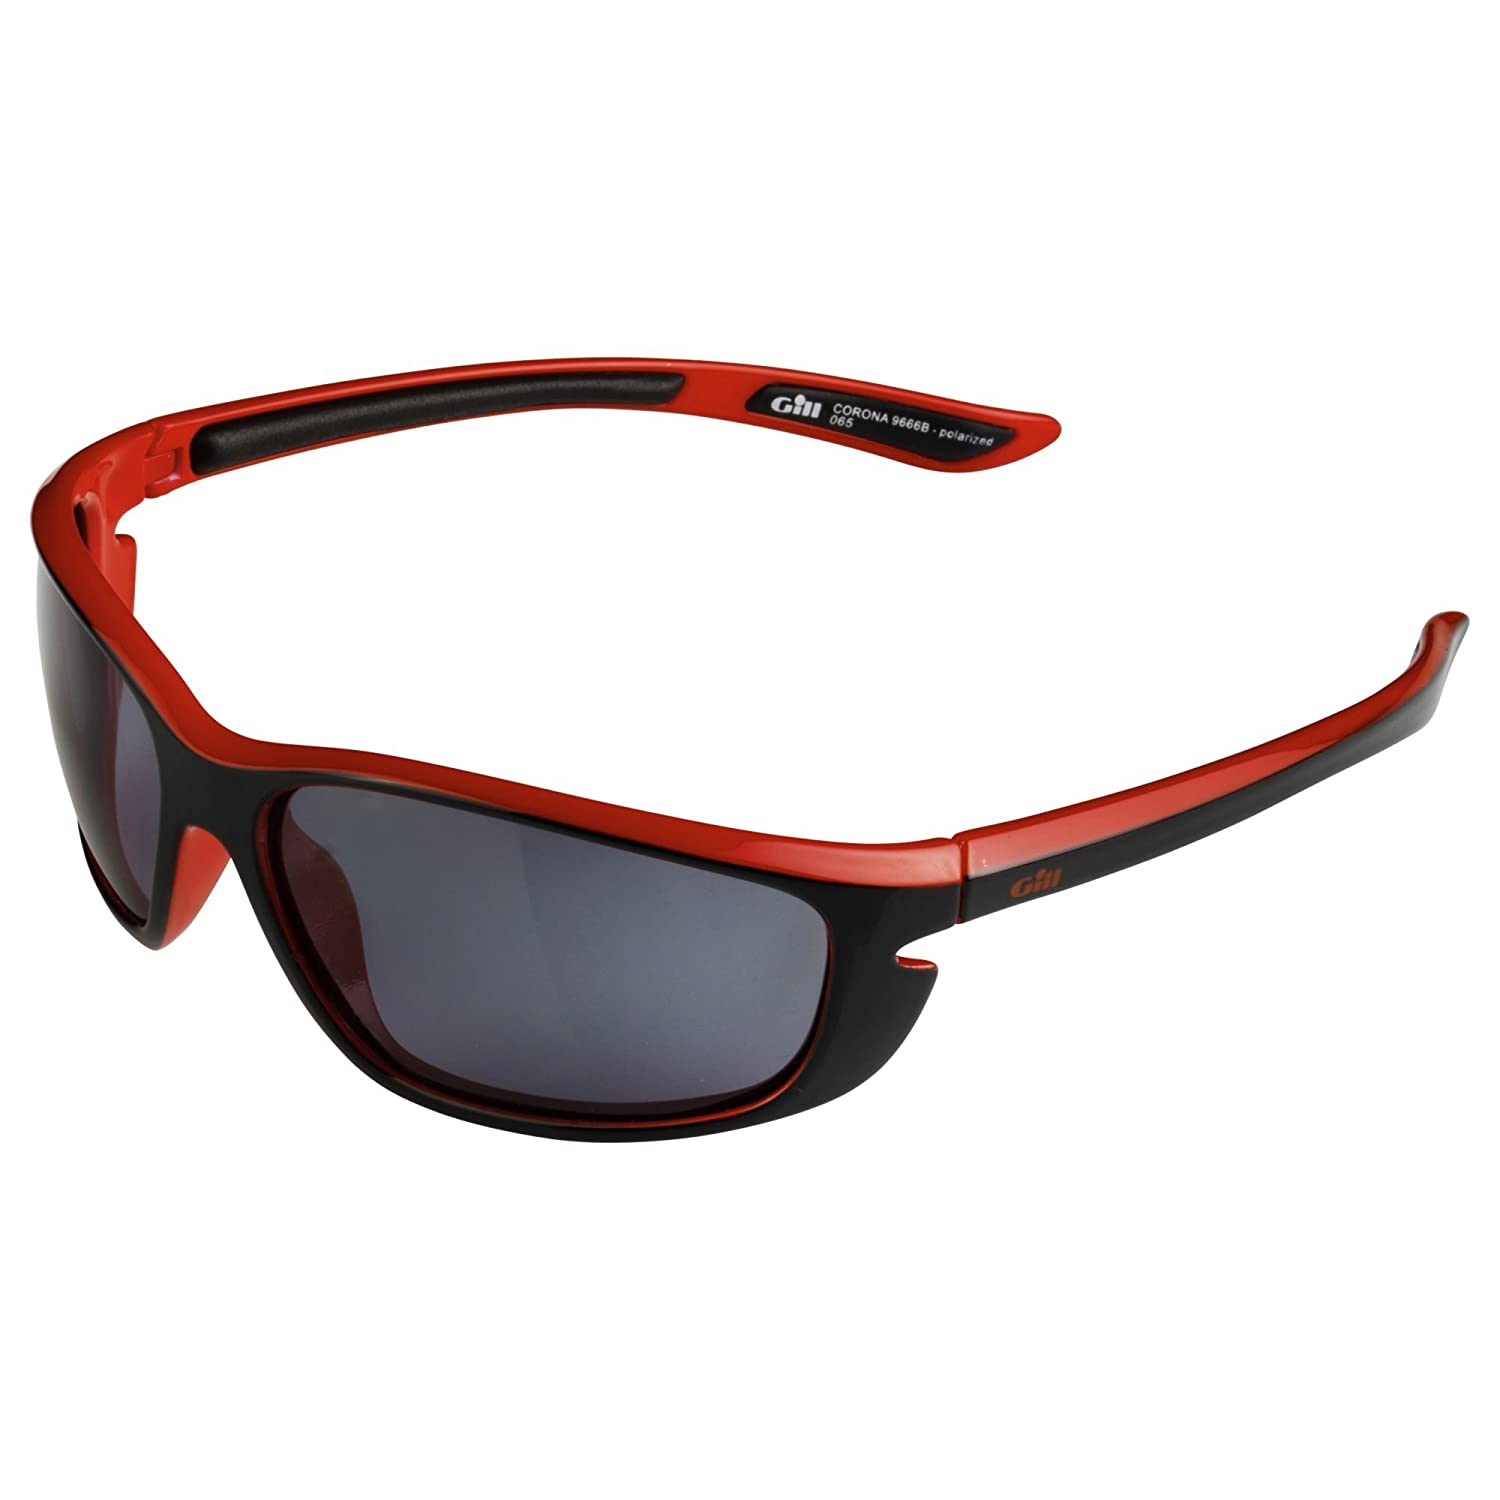 2016 Gill Corona Sunglasses Black/Red 9666 TEAguH